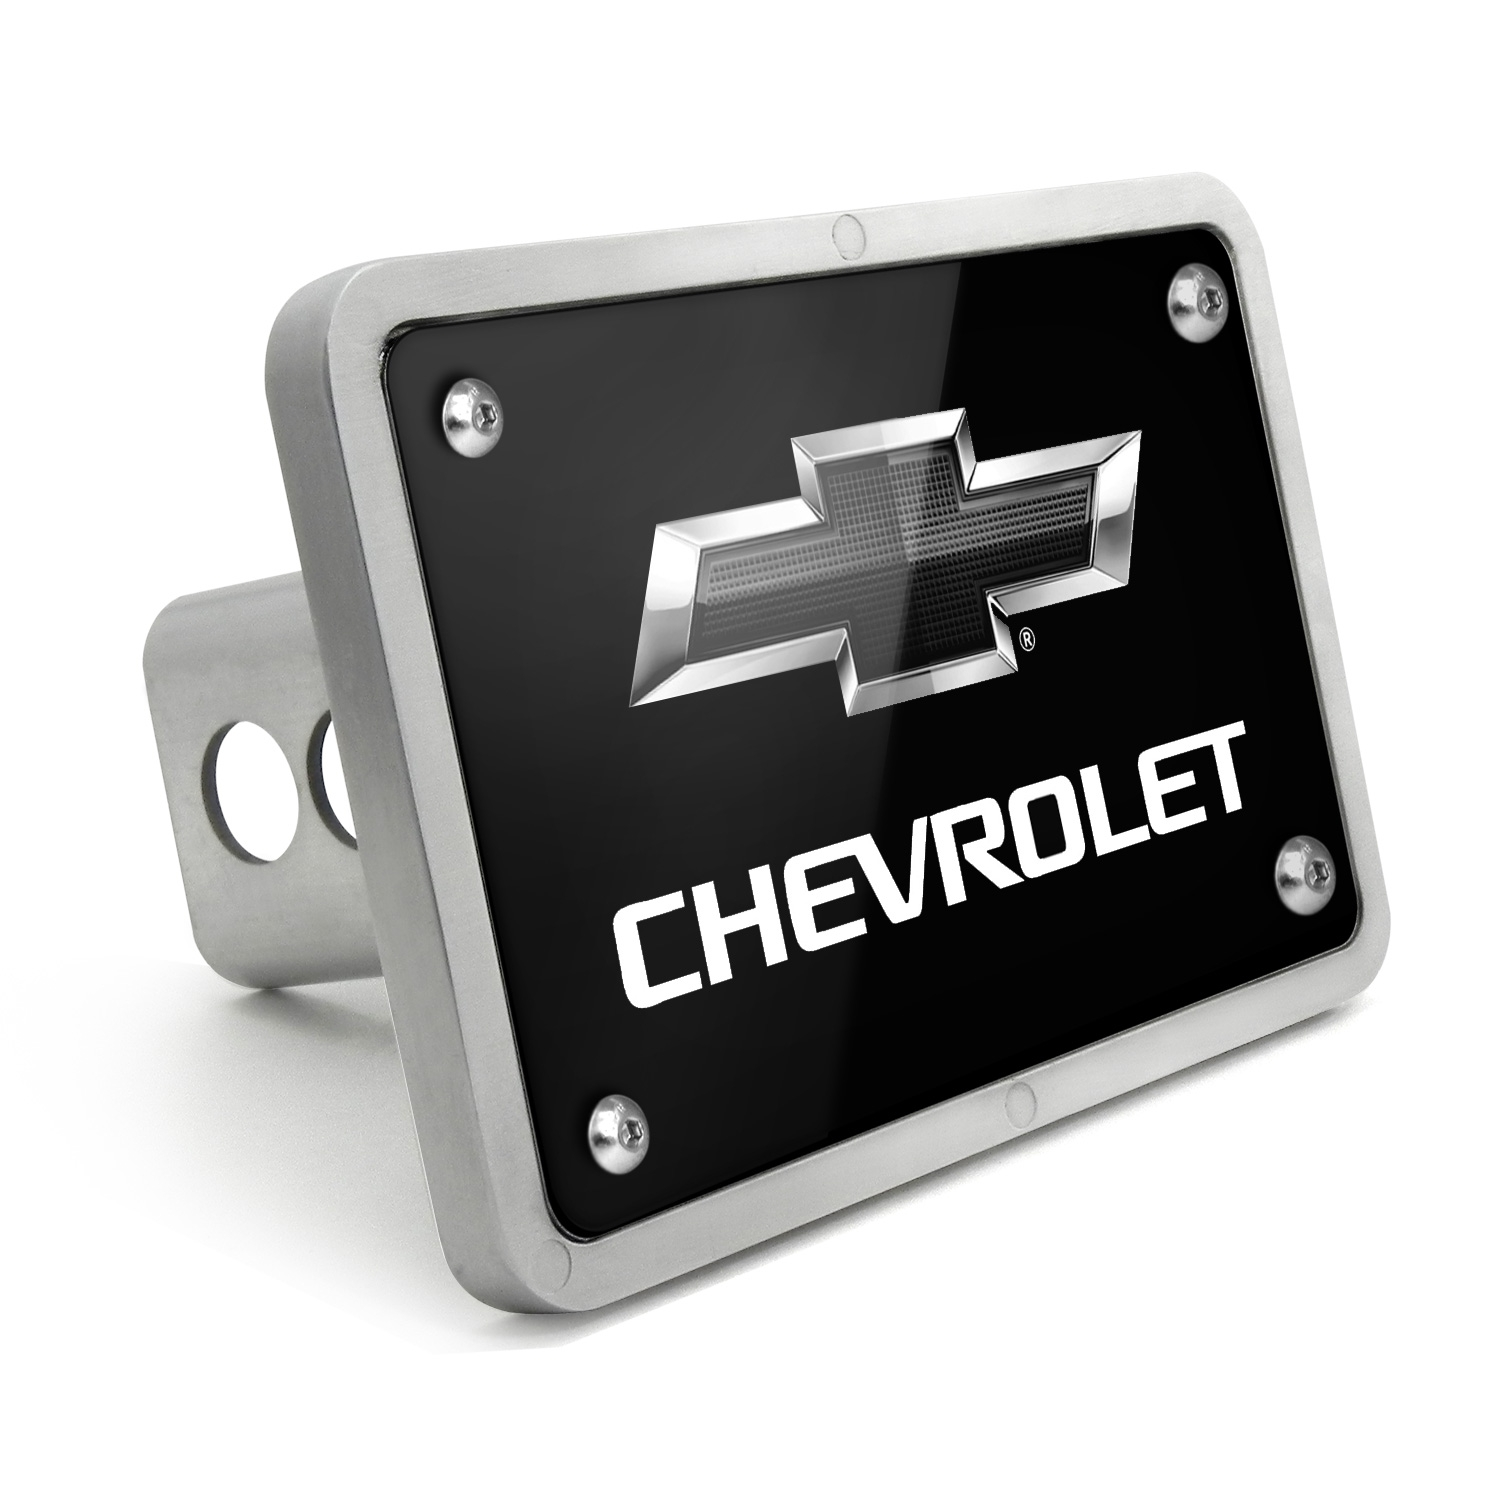 Chevrolet Black Logo 2011 UV Graphic Black Billet Aluminum 2 inch Tow Hitch Cover